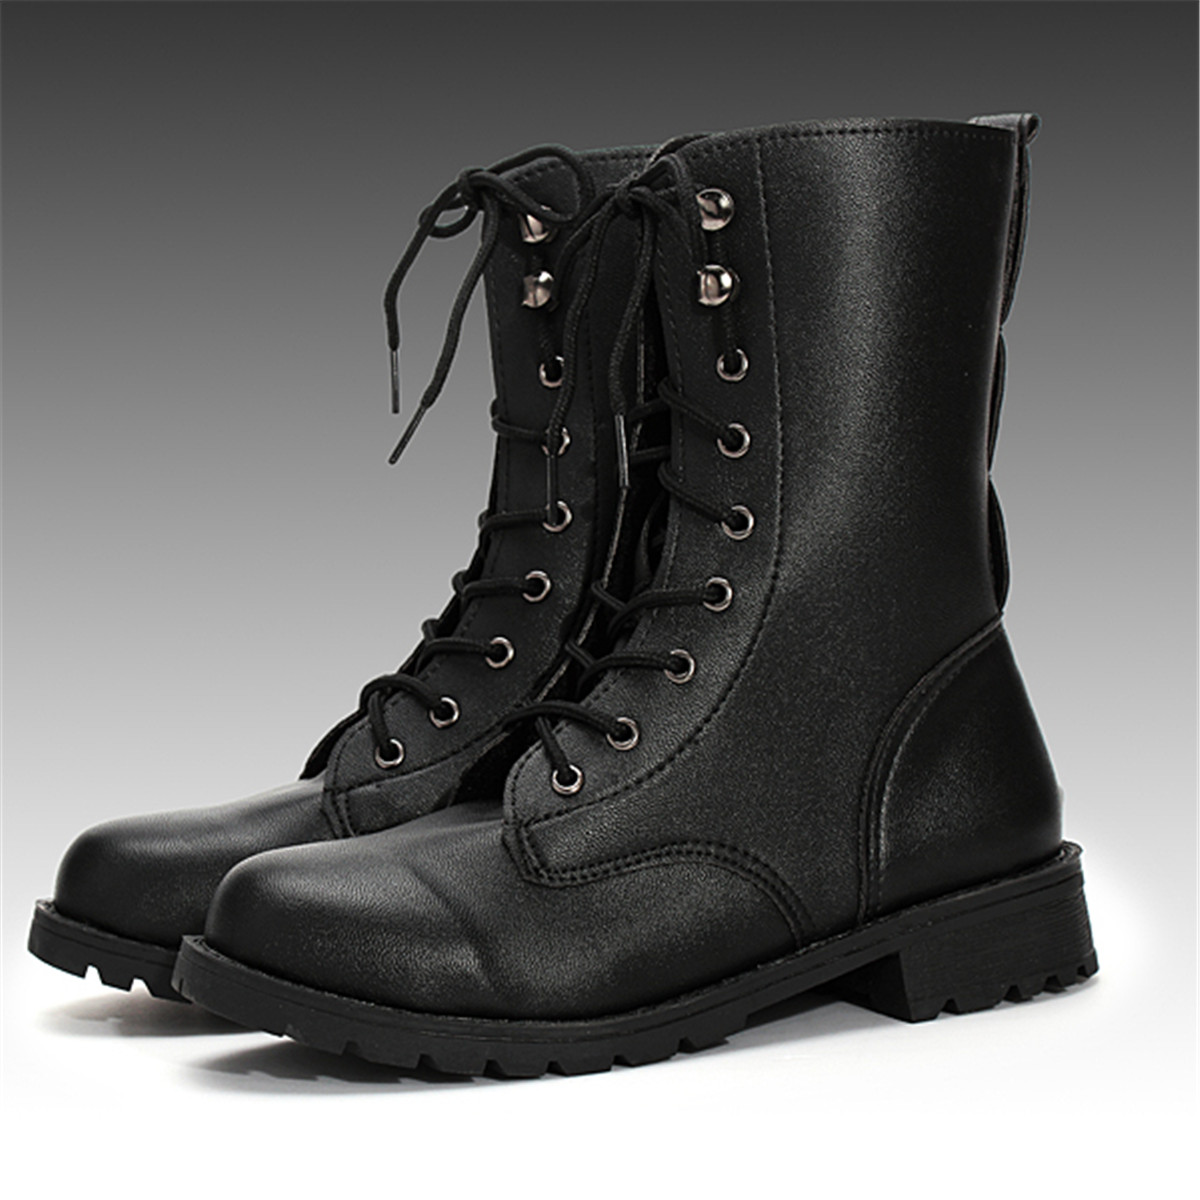 bottes martin bottines chaussures motard lacets arm e montantes punk noir femmes ebay. Black Bedroom Furniture Sets. Home Design Ideas